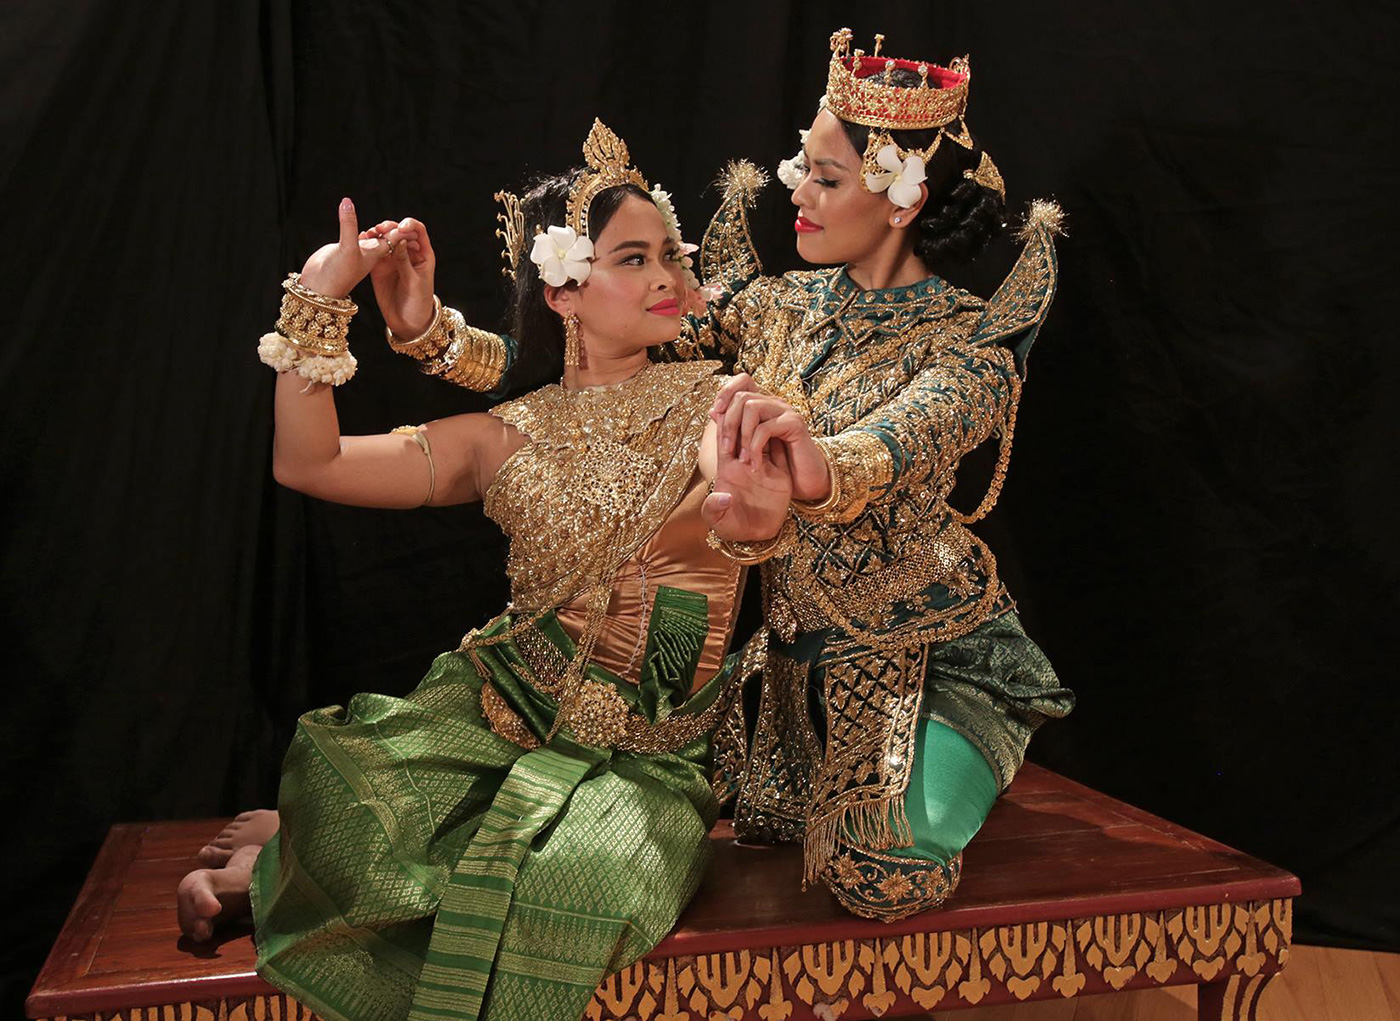 The Angkor Dance Troupe is excited to announce the showcase of Preah Thoung Neang Neak: Origin of Cambodian Wedding. Preah Thoung Neang Neak is a tale that shares the union of an Indian Prince (Preah Thoung) and the Naga Princess (Neang Neak), the earliest ancestors of the Khmer people, also seen in present day traditional Cambodian wedding ceremonies. The production will feature a range of dancers from Youth to Alumni, as well as the works of ADT's Artistic Director, Phousita Huy, in collaboration with many Master Teachers from the Royal University of Fine Arts in Phnom Penh, Cambodia.